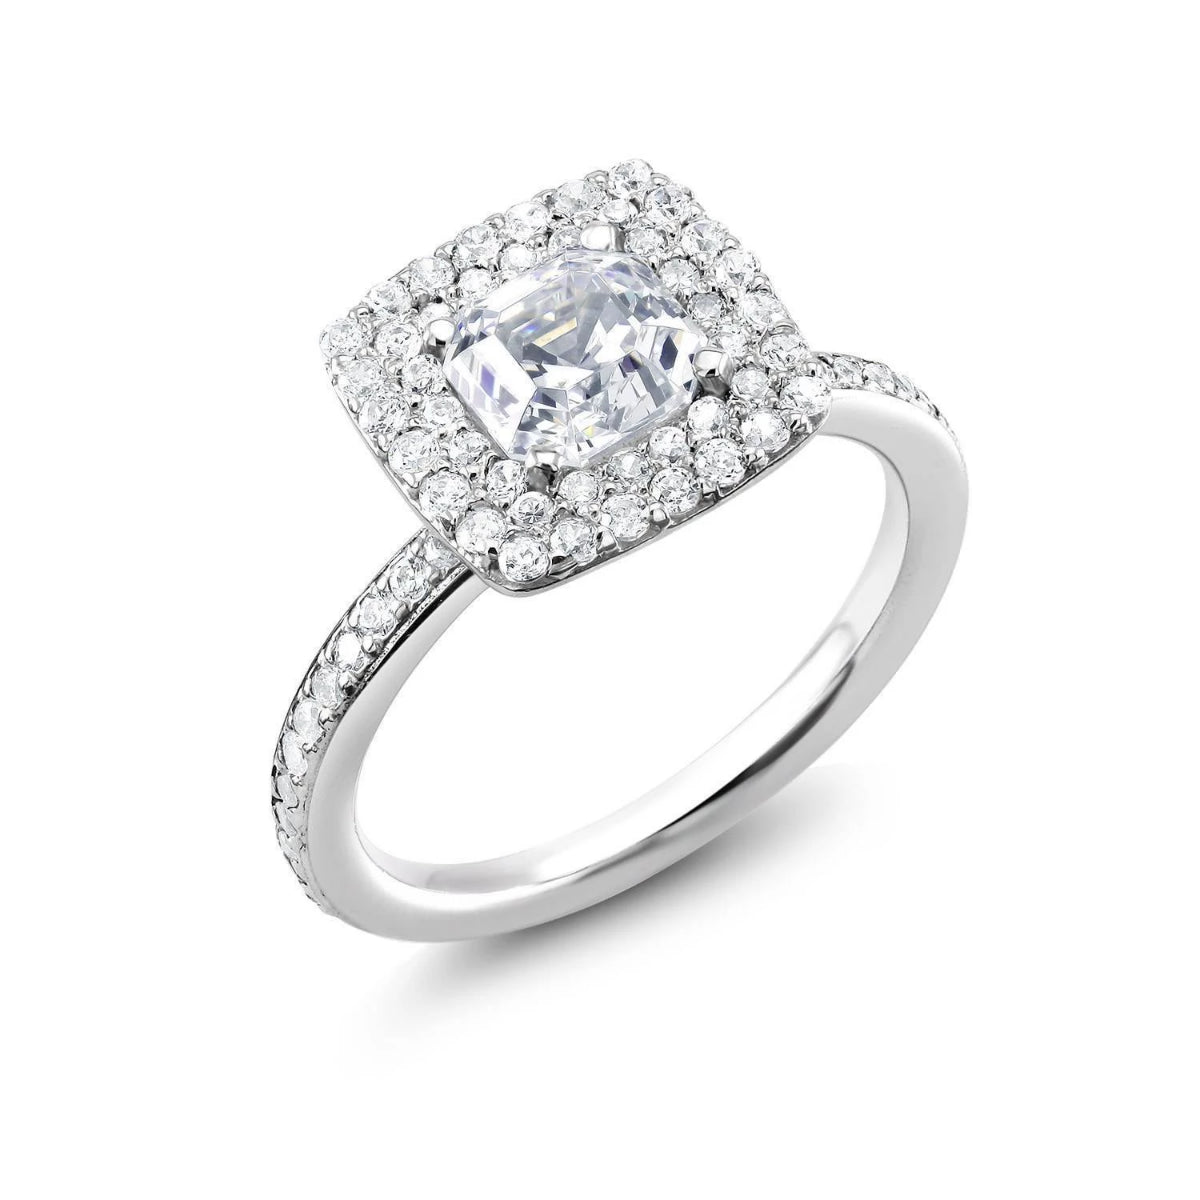 is tacori isnt for exquisitely forever engagement in elegant a that blooms embrace product it an the timeless ring and starlit center diamond promised with you round crown spotlight time